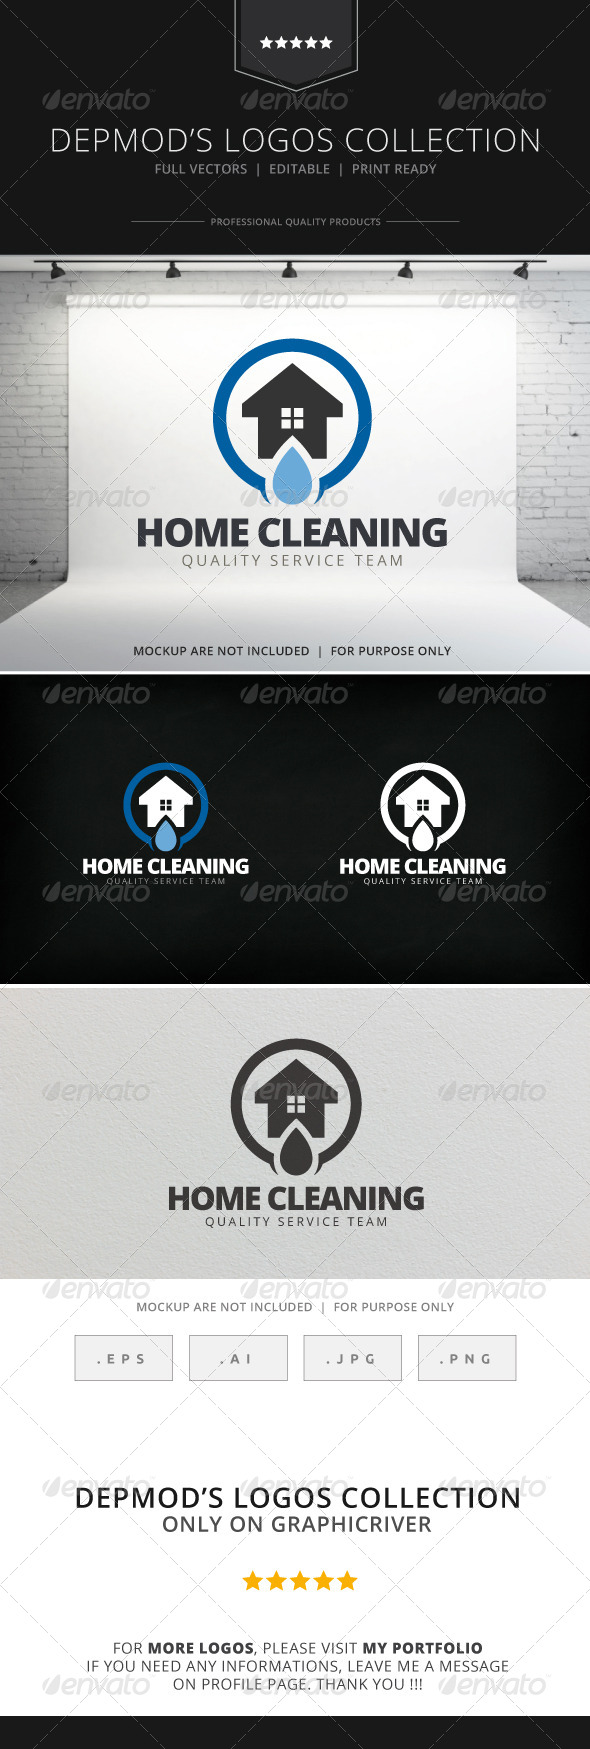 Home Cleaning, Logo